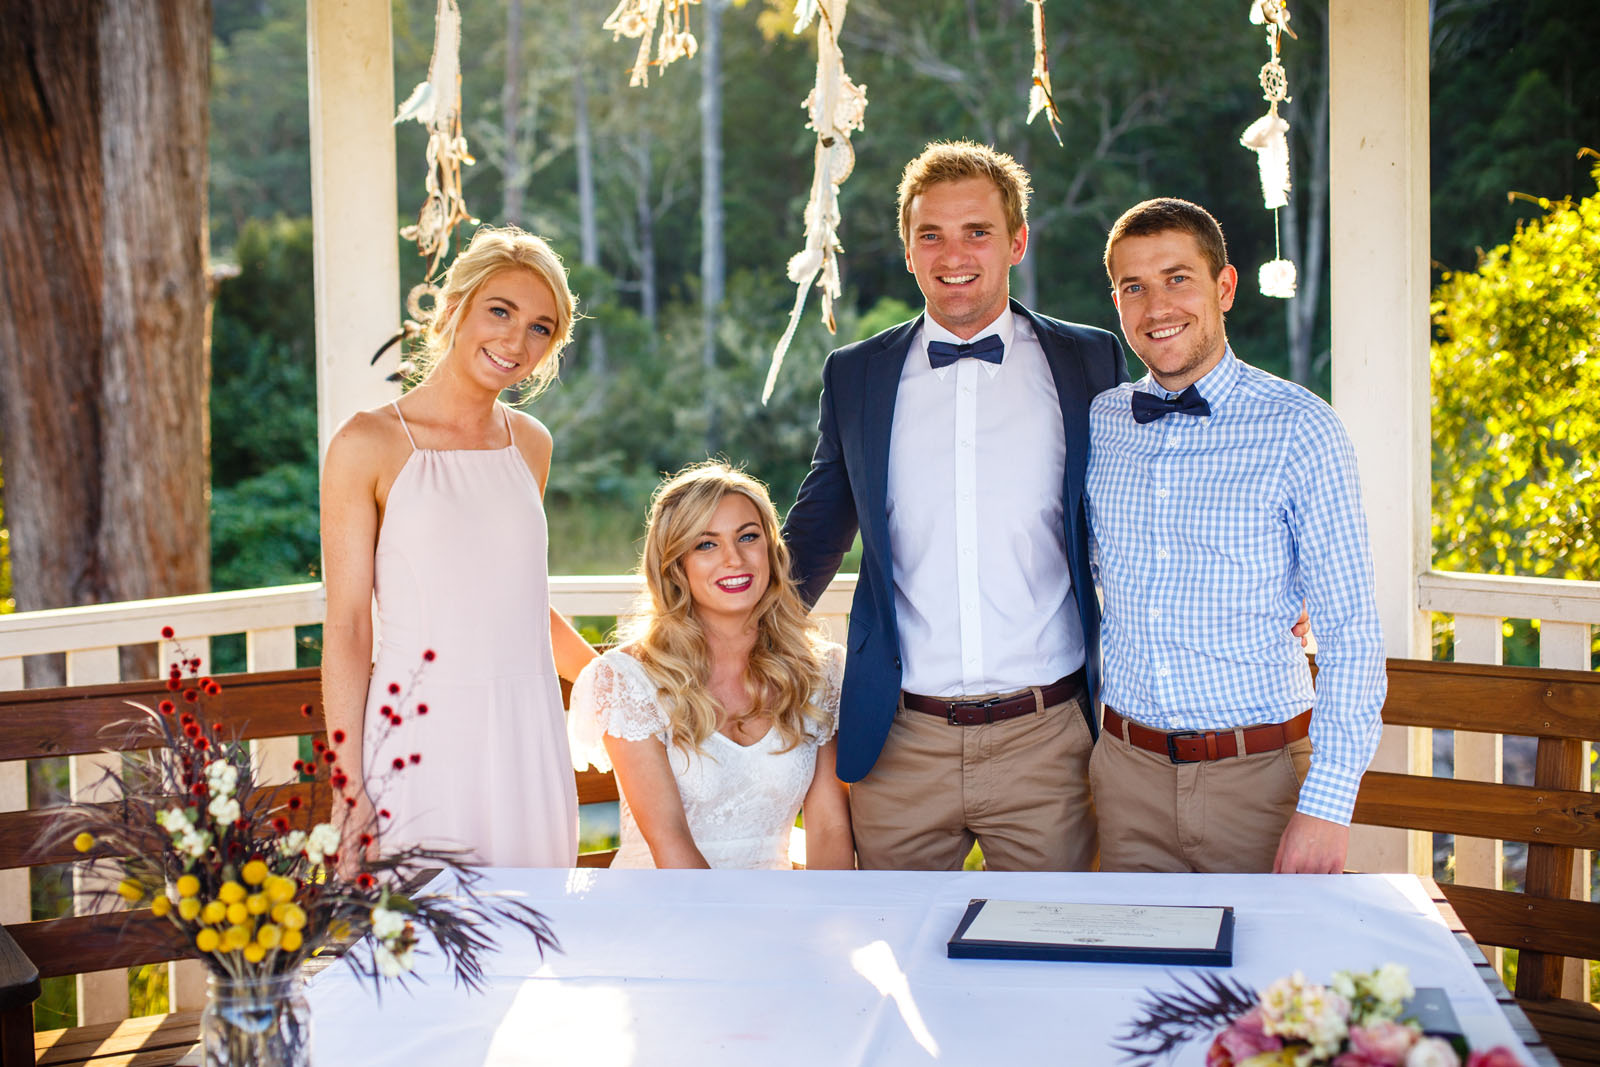 gold_coast_wedding_photographer_062